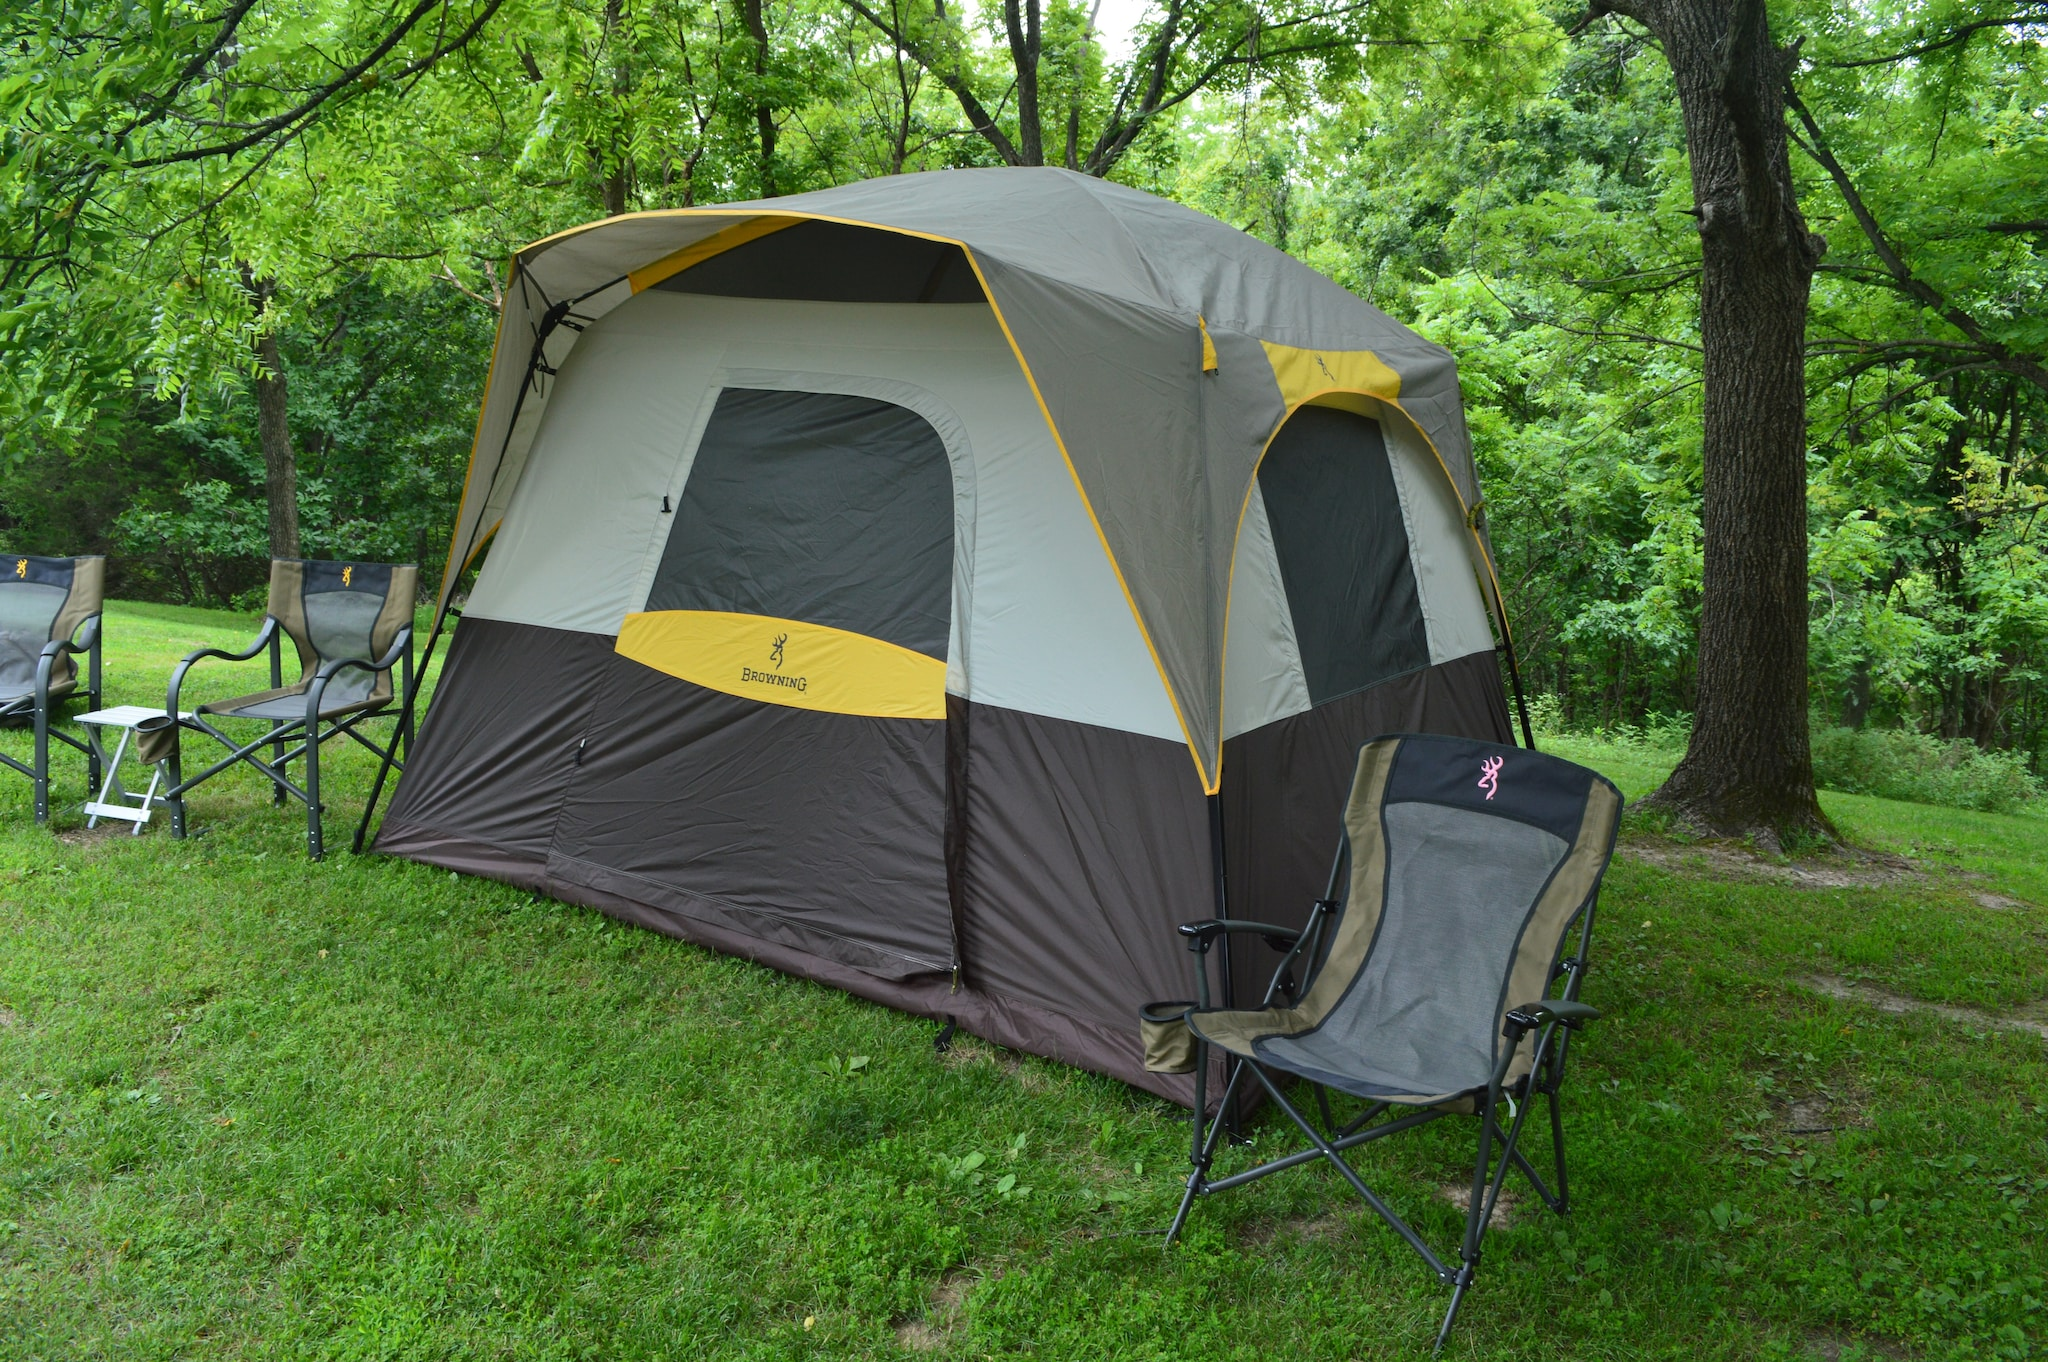 Alps Outdoorz is much more than hunting gear. They showed off a full line of Browning Camping items, from various tents to camp chairs and accessories. This Ridge Creek tent sleeps up to five, though it looks like a couple hunters with all their gear could work out of this model on a hunting trip. (Photo: Kristin Alberts)